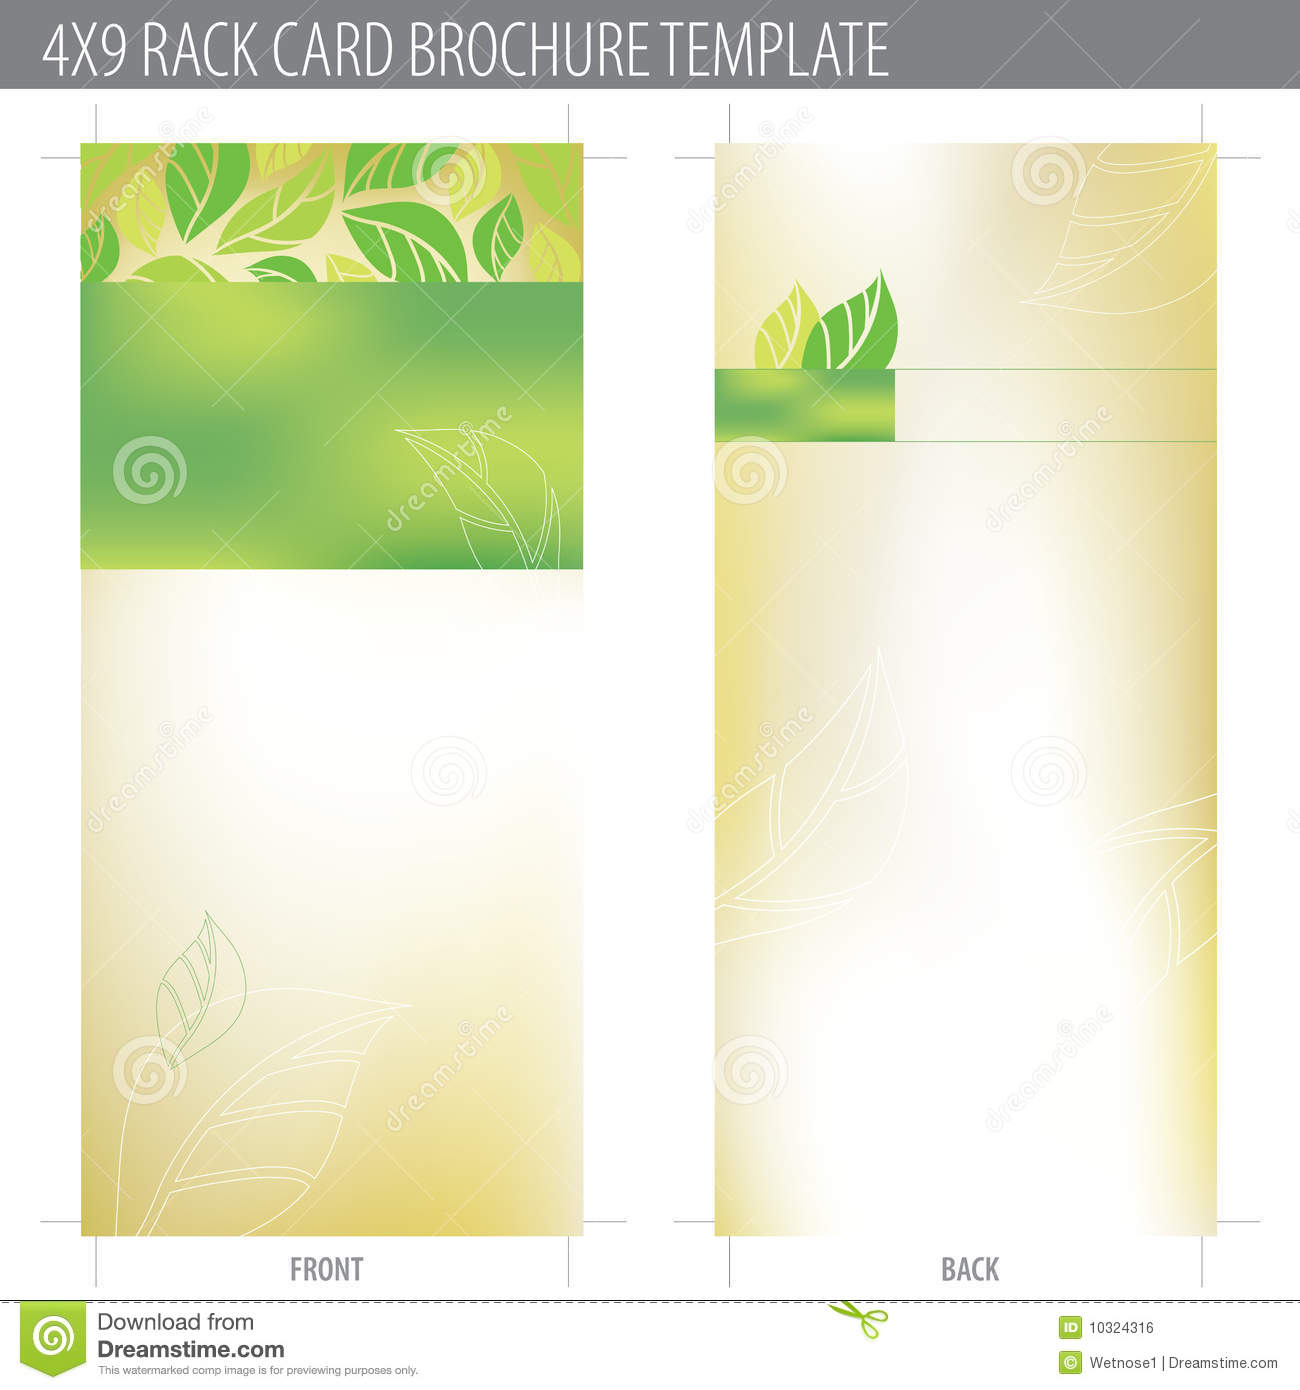 4x9 rack card brochure template stock vector image 10324316 for Brochure templates